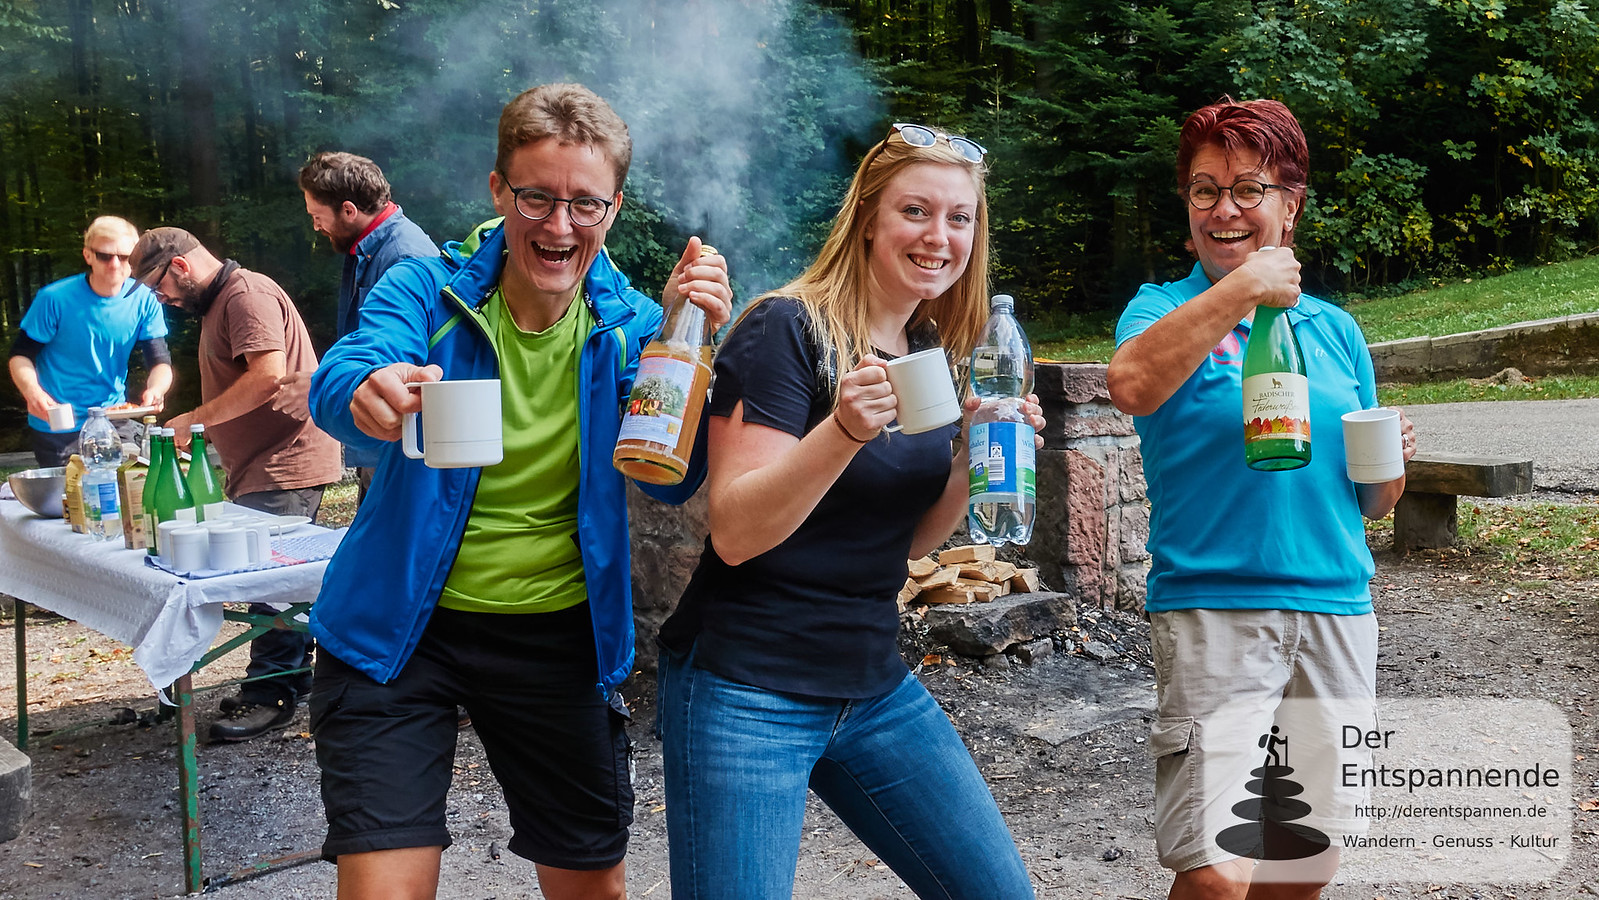 Outdoor-Cooking an der Hirschwinkelhütte: Claudia Herr, Julia Strickfaden, Anita D. Becker